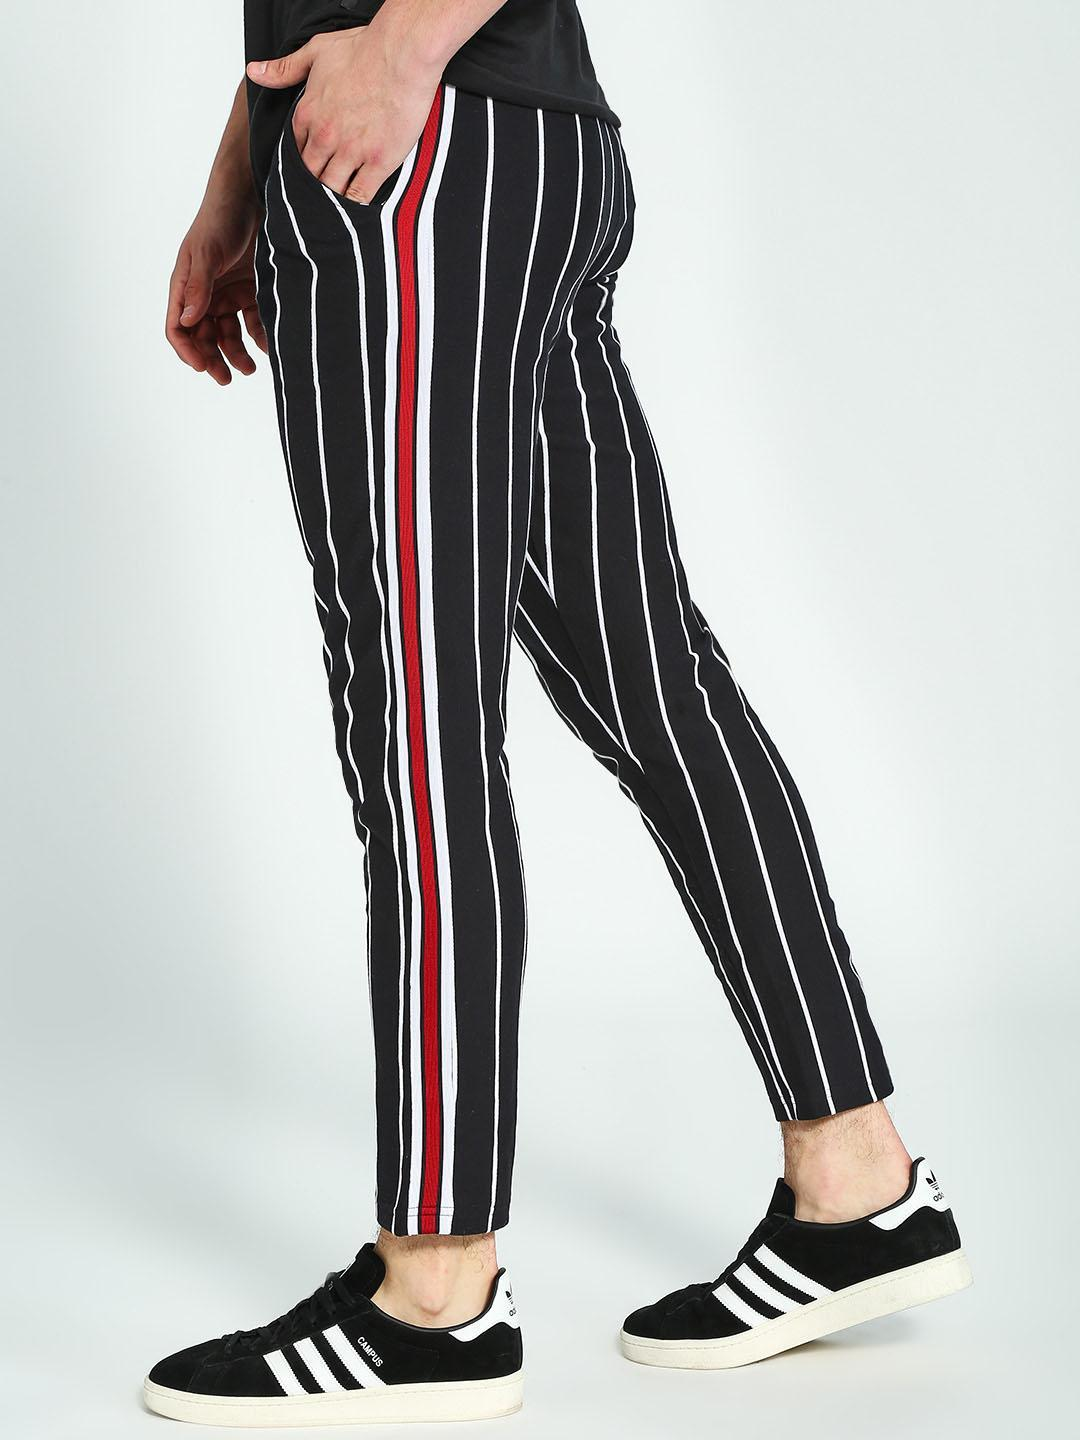 Garcon Multi Side Tape Yarn-Dyed Pinstripe Trousers 1